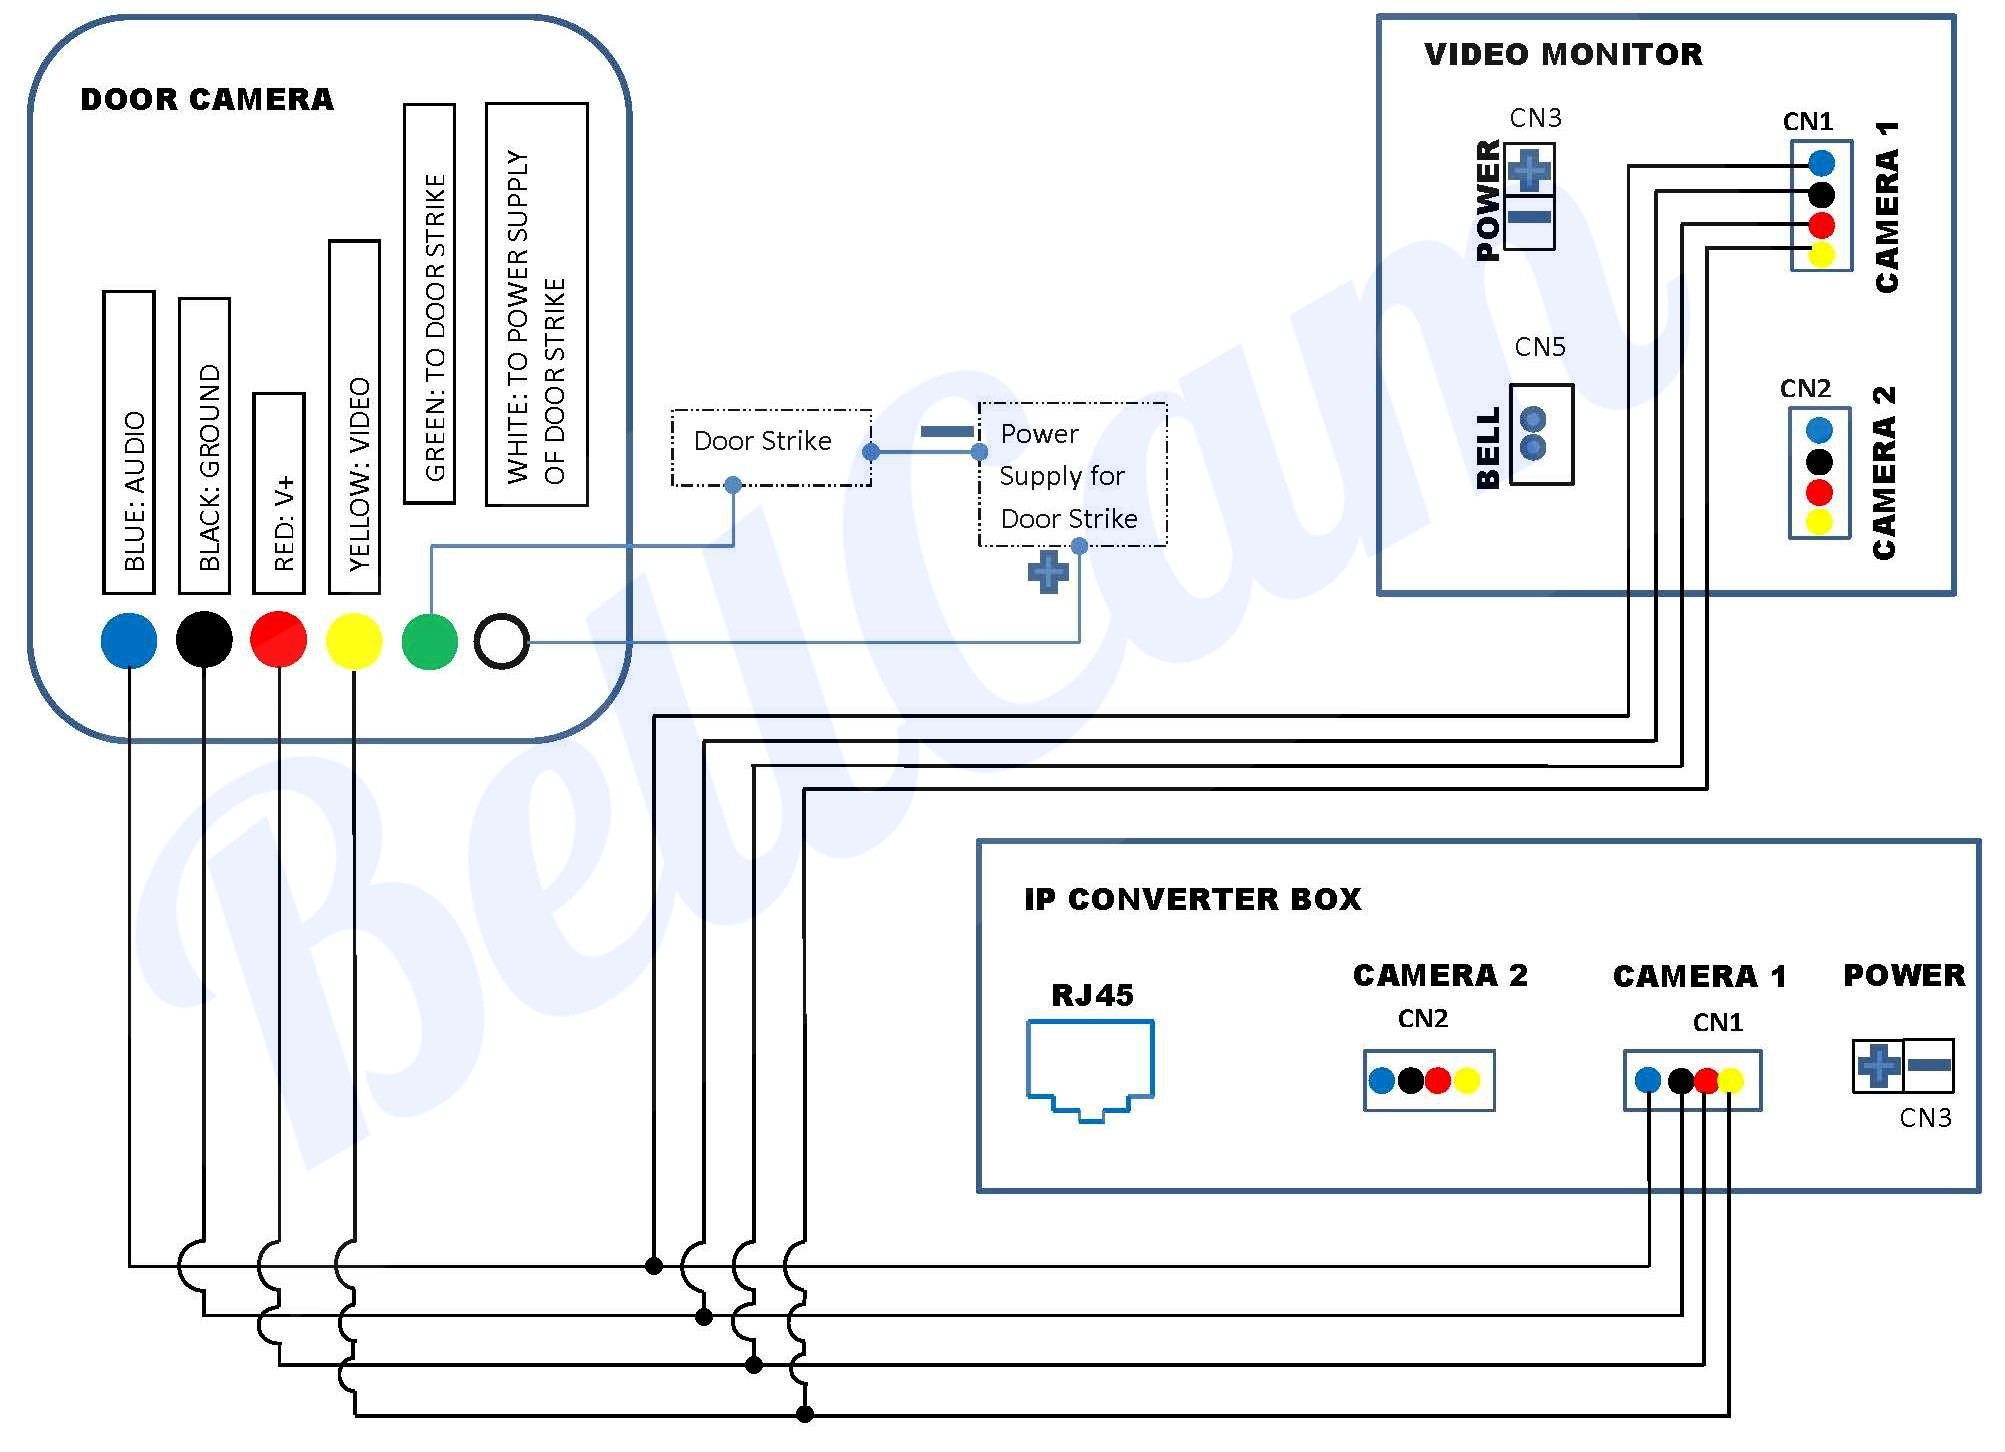 DIAGRAM] Samsung Surveillance Camera Wiring Diagram FULL Version HD Quality Wiring  Diagram - PREGBOARDWIRING.CONCESSIONARIABELOGISENIGALLIA.ITconcessionariabelogisenigallia.it